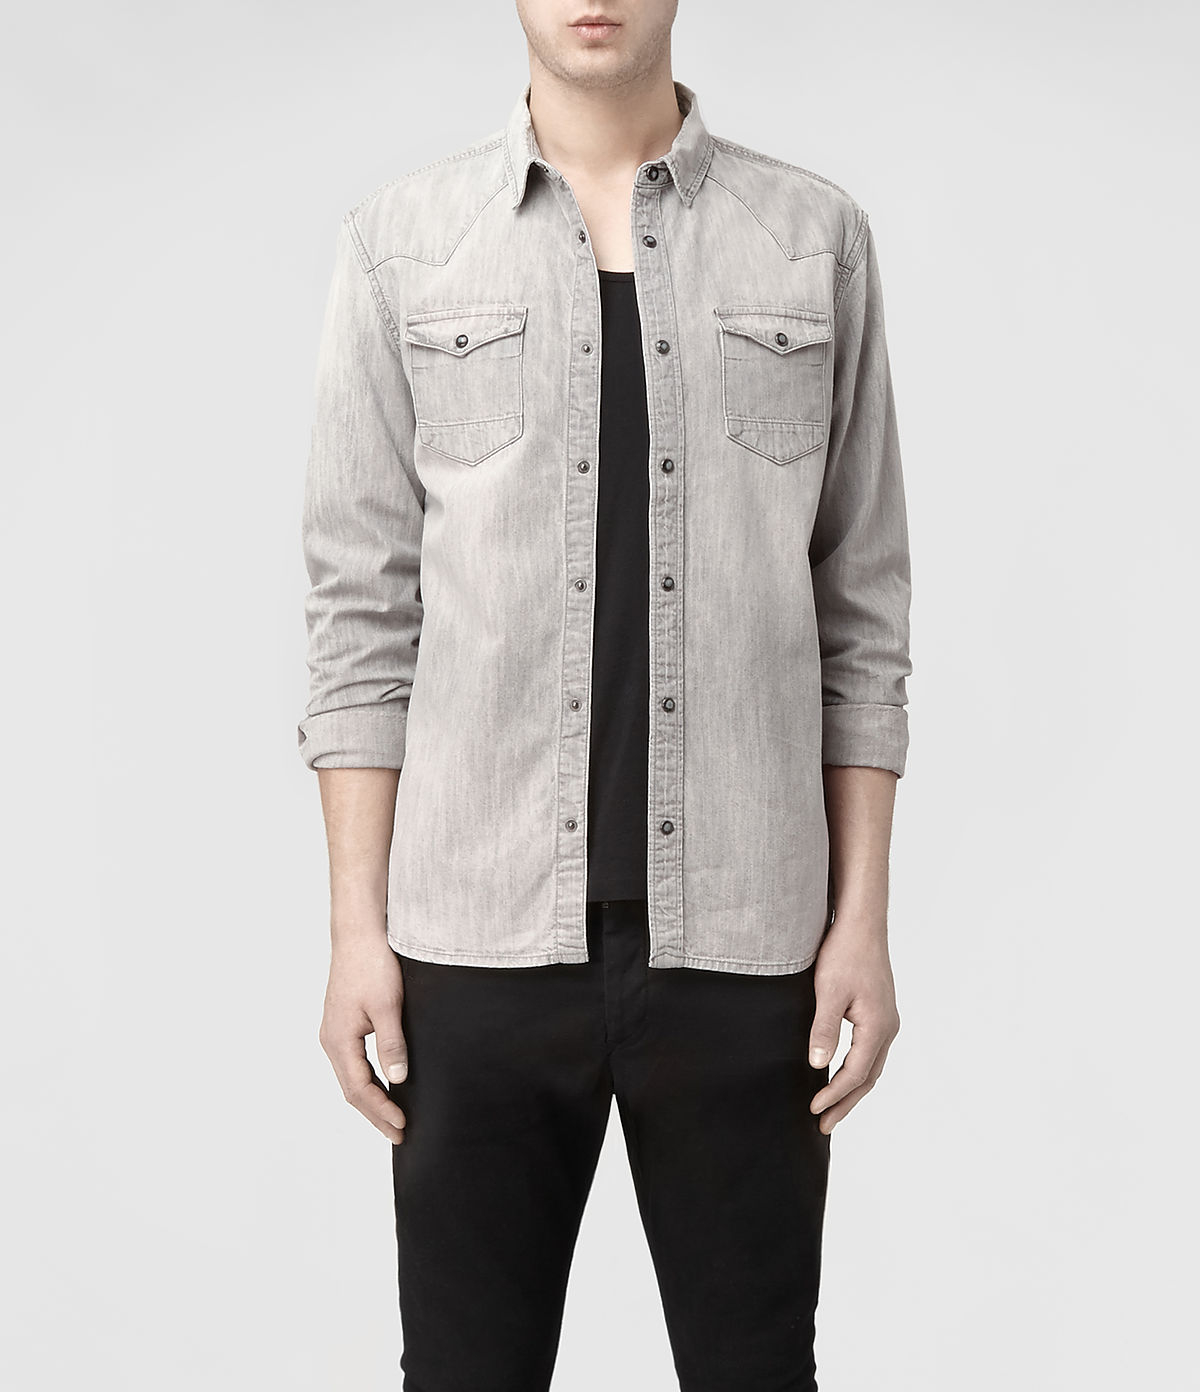 969e0b47cd Lyst - AllSaints Cannon Ls Shirt in Gray for Men